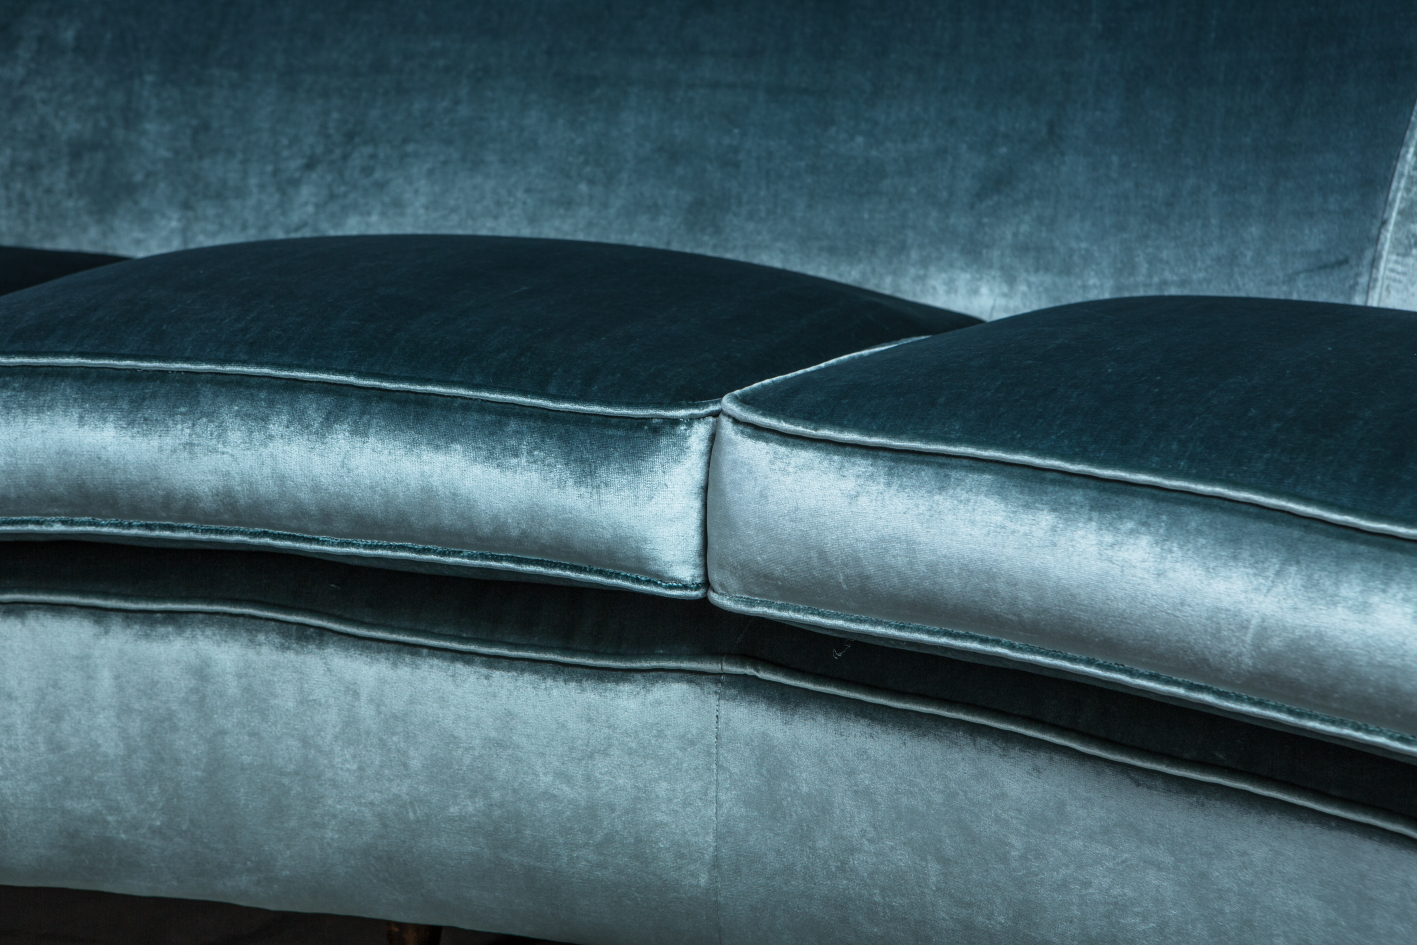 Three seater mid century Italian curved sofa - 1940s - detail